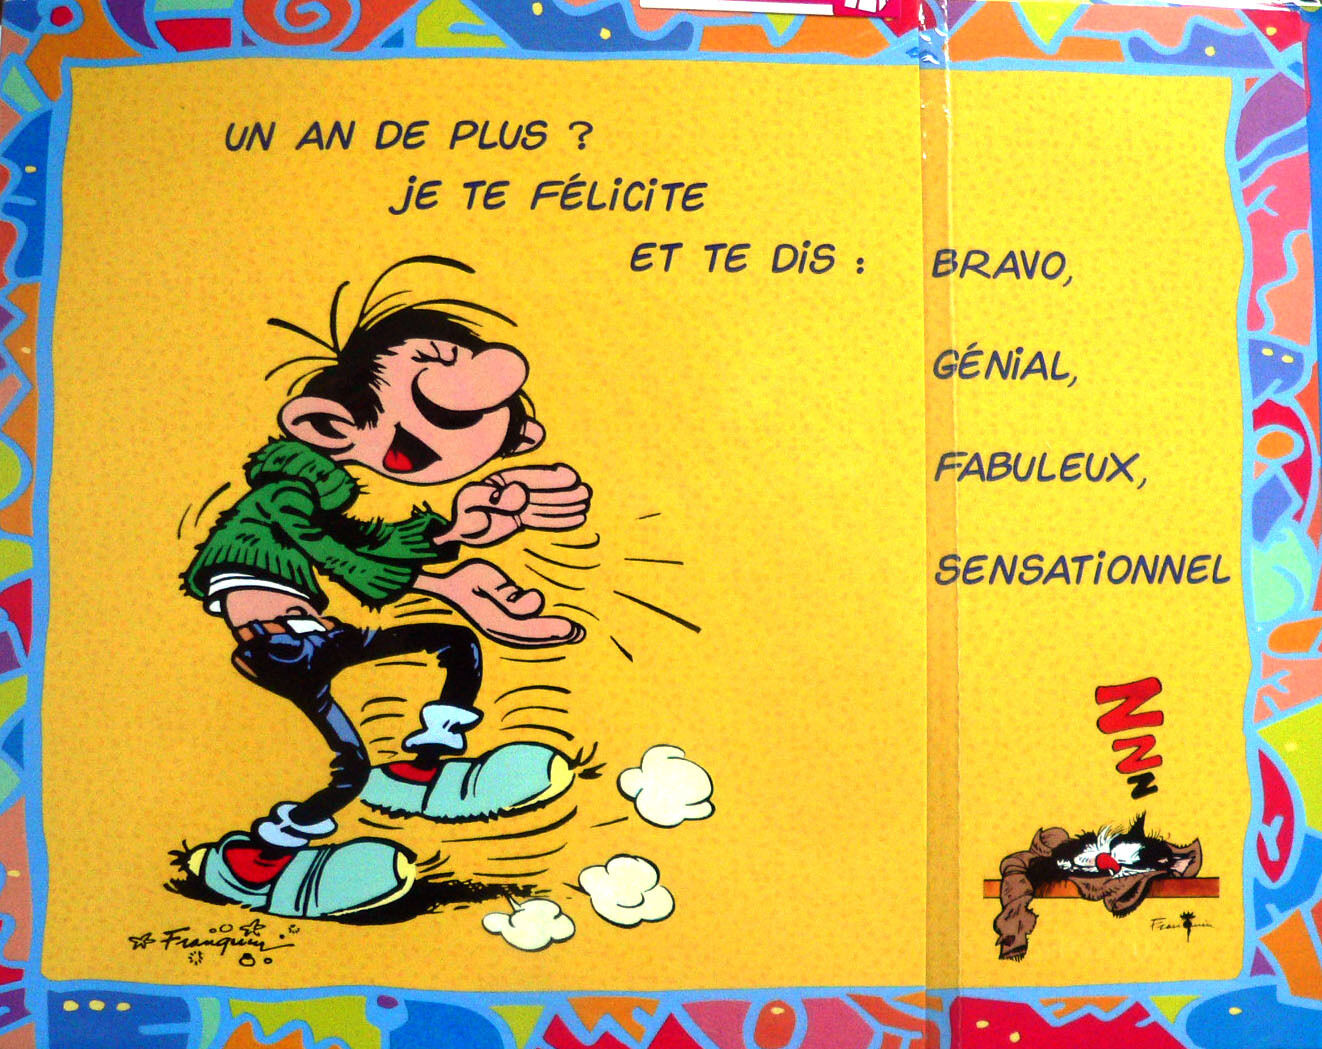 rare grande carte postale d 39 anniversaire de gaston lagaffe enveloppe humour eur 5 90. Black Bedroom Furniture Sets. Home Design Ideas